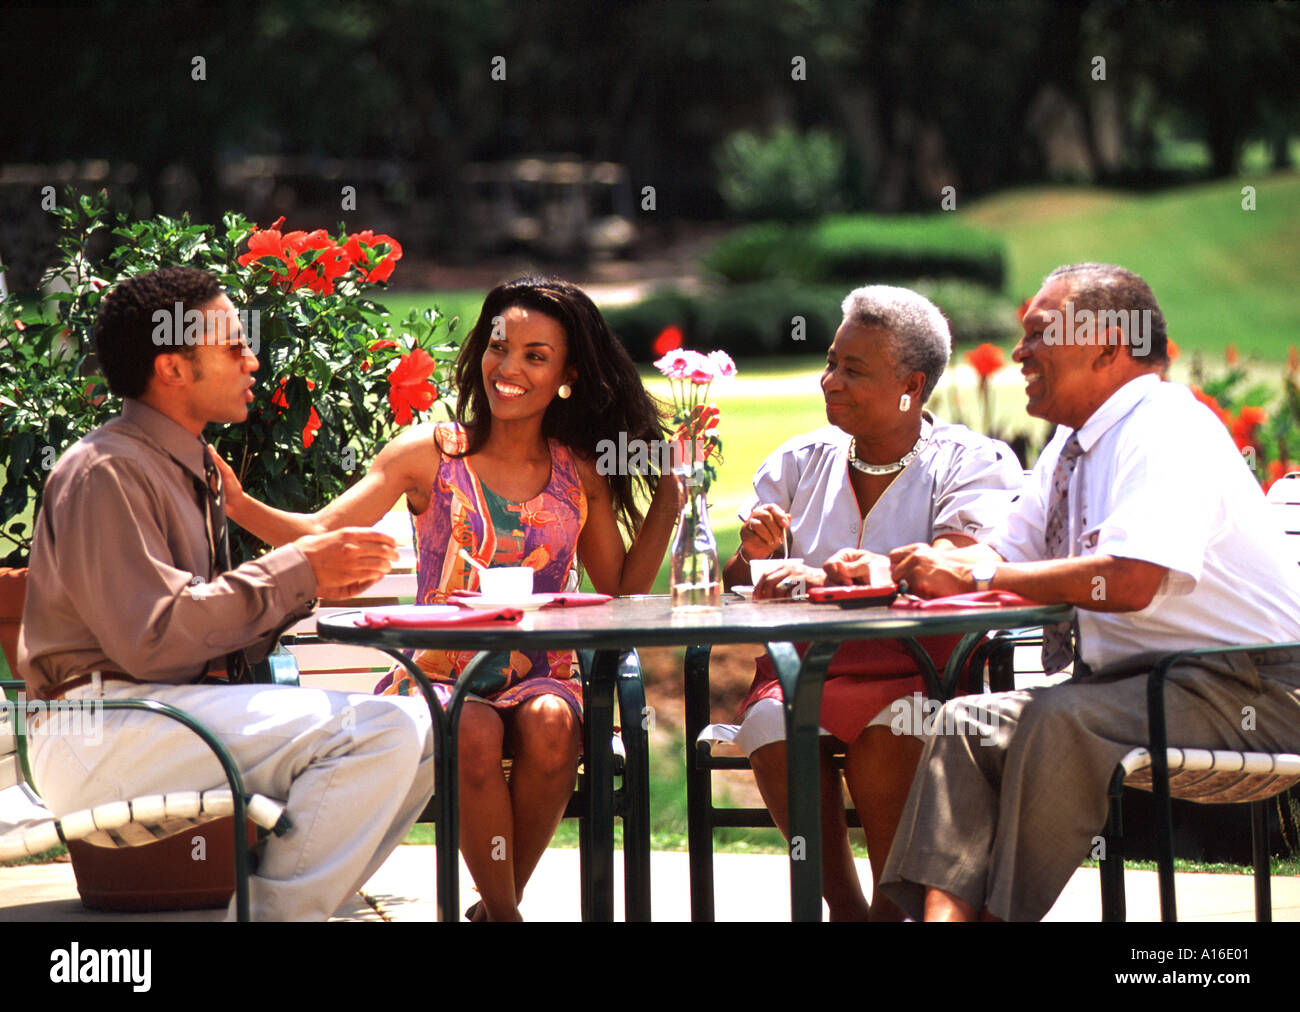 African American family enjoying lunch at outdoor cafe Banque D'Images